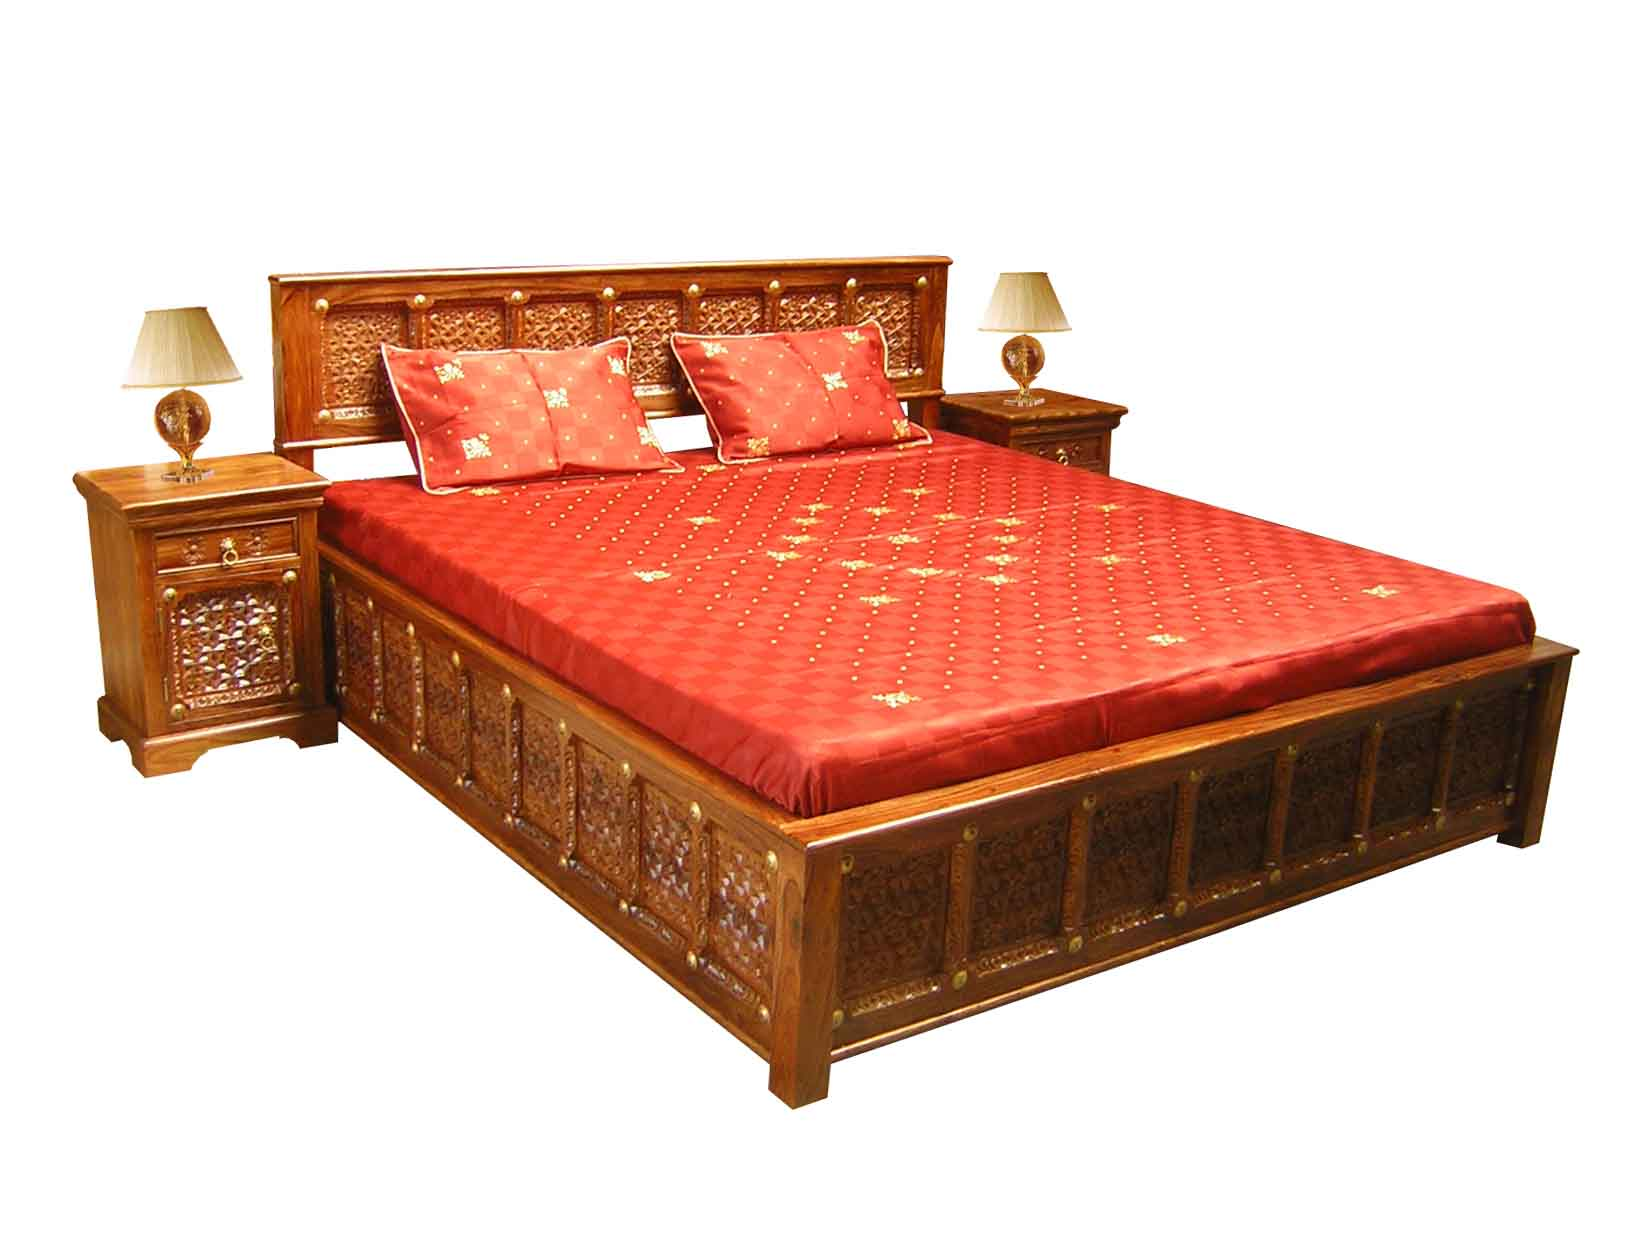 Sell Wooden Handicraft Furniture Photo Detailed About Sell Wooden Handicraft Furniture Picture